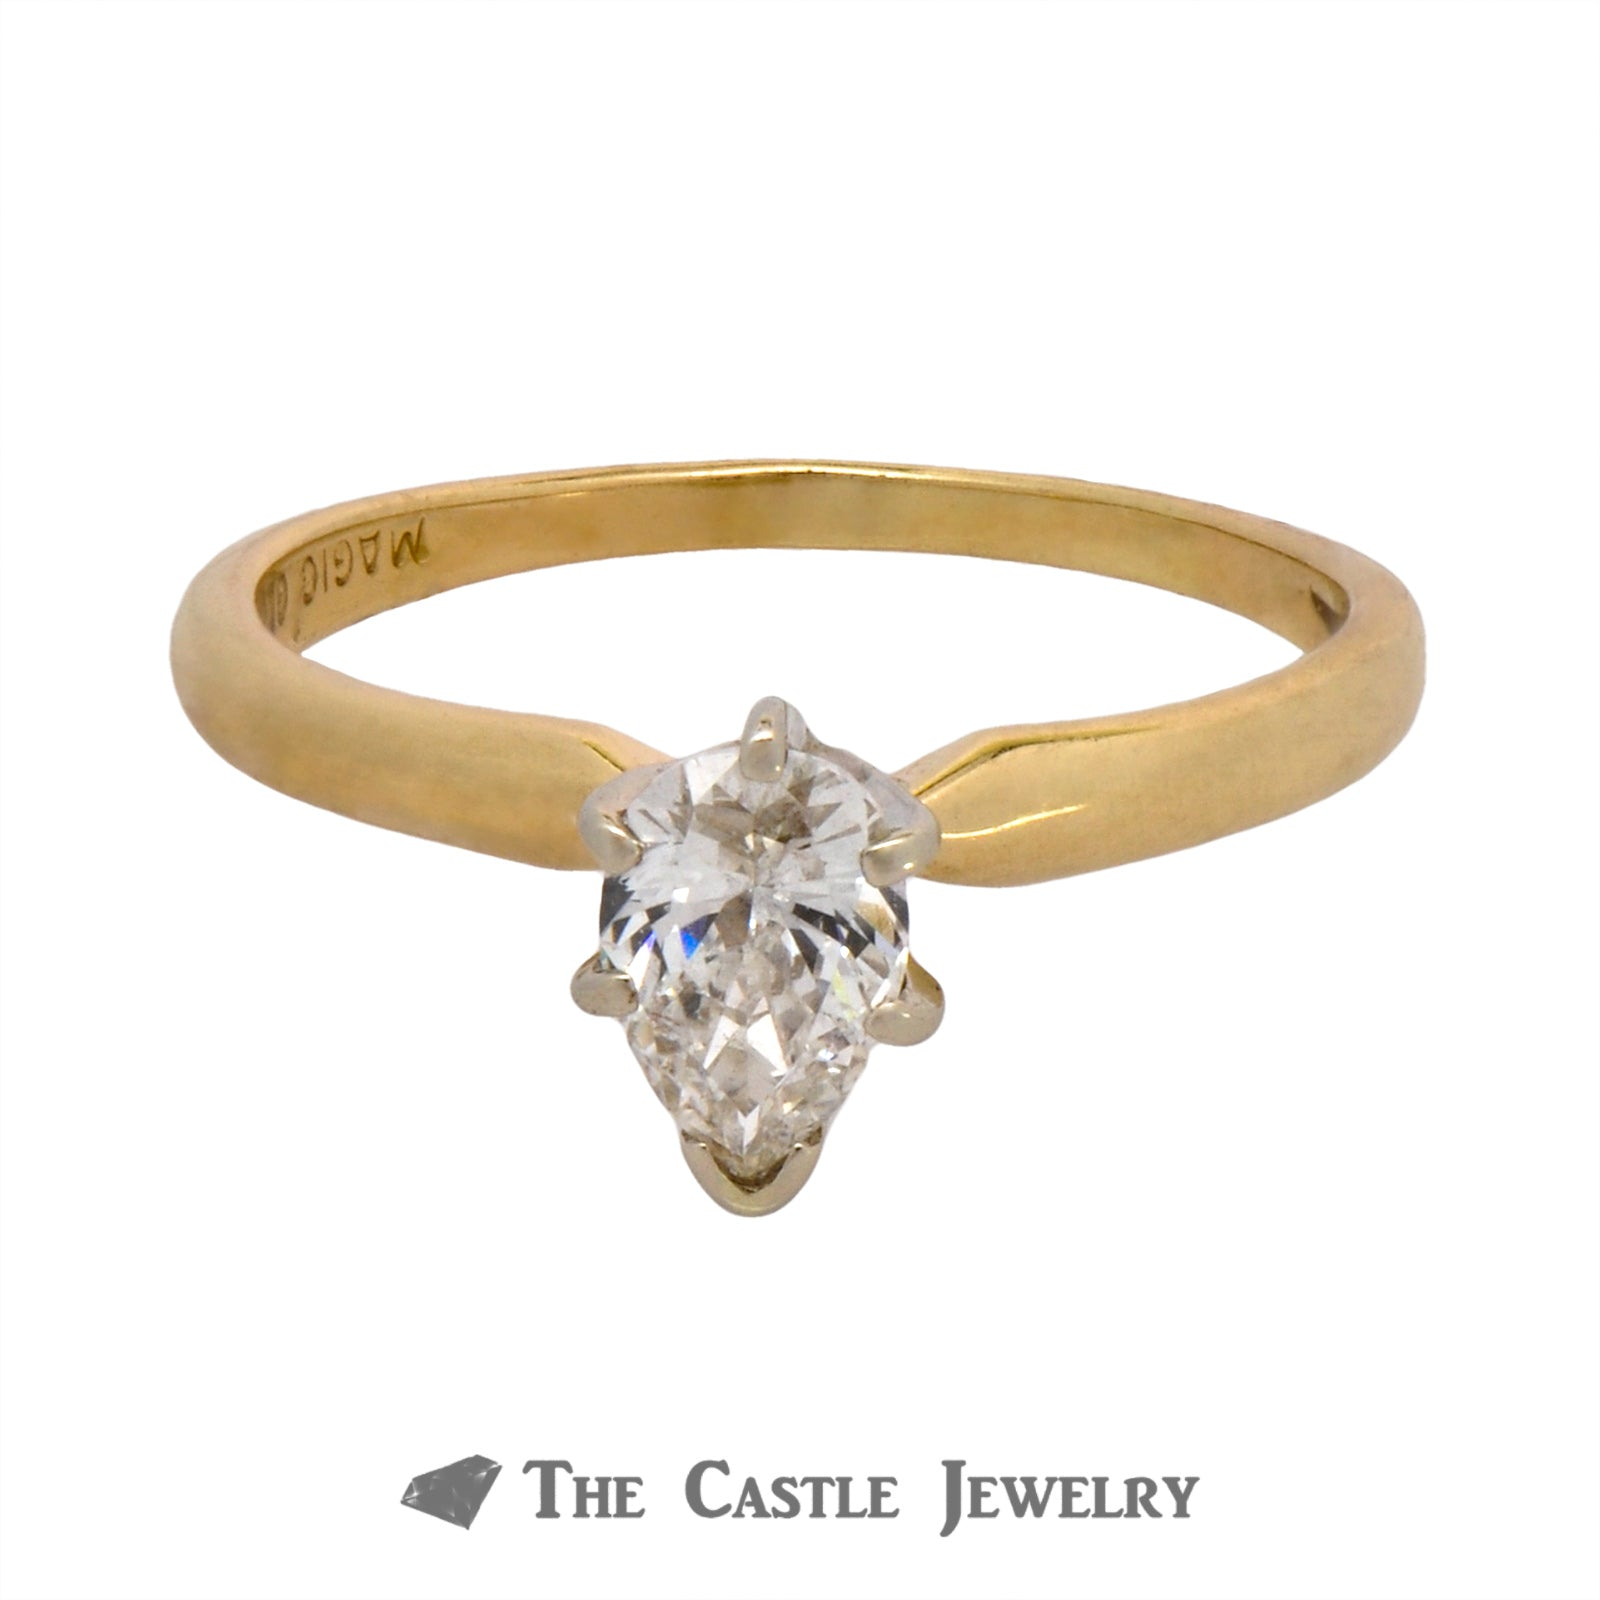 Solitaire Pear Diamond Engagement Ring in 6 Prong Tiffany Mounting